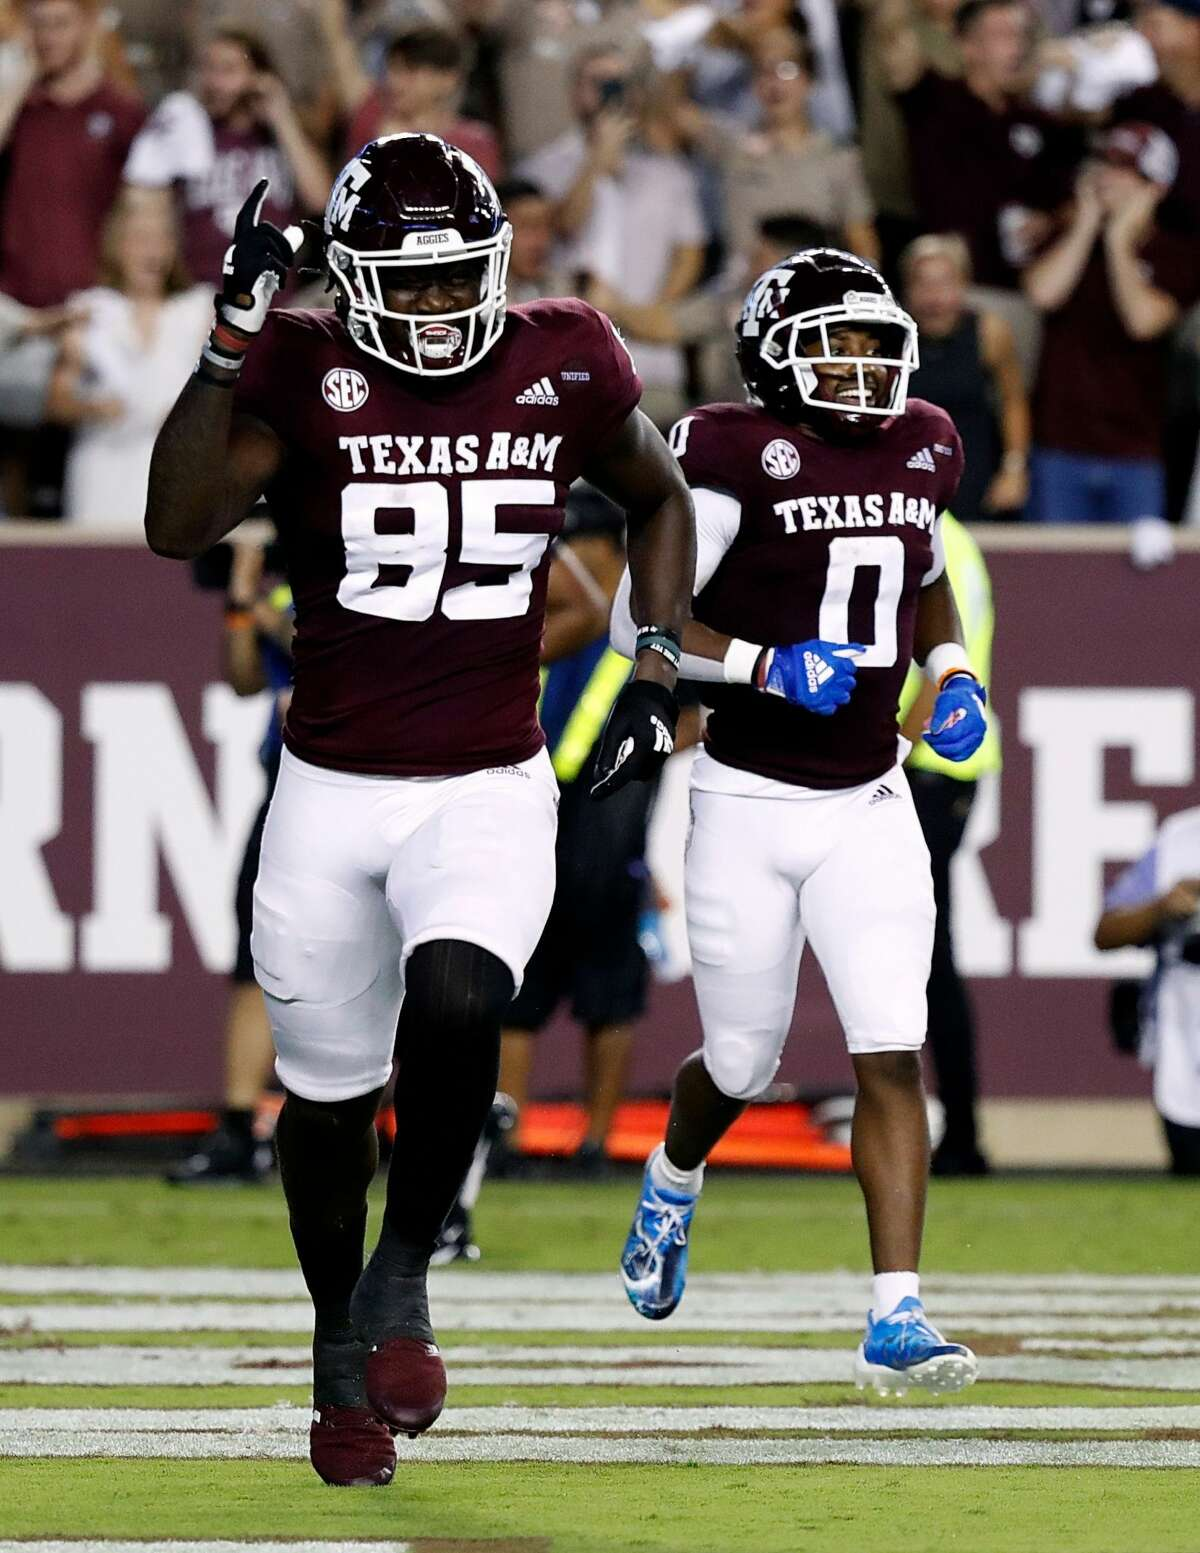 COLLEGE STATION, TEXAS - OCTOBER 09: Jalen Wydermyer #85 of the Texas A&M Aggies and Ainias Smith #0 celebrates a touchdown pass in the first quarter against the Alabama Crimson Tide at Kyle Field on October 09, 2021 in College Station, Texas. (Photo by Bob Levey/Getty Images)